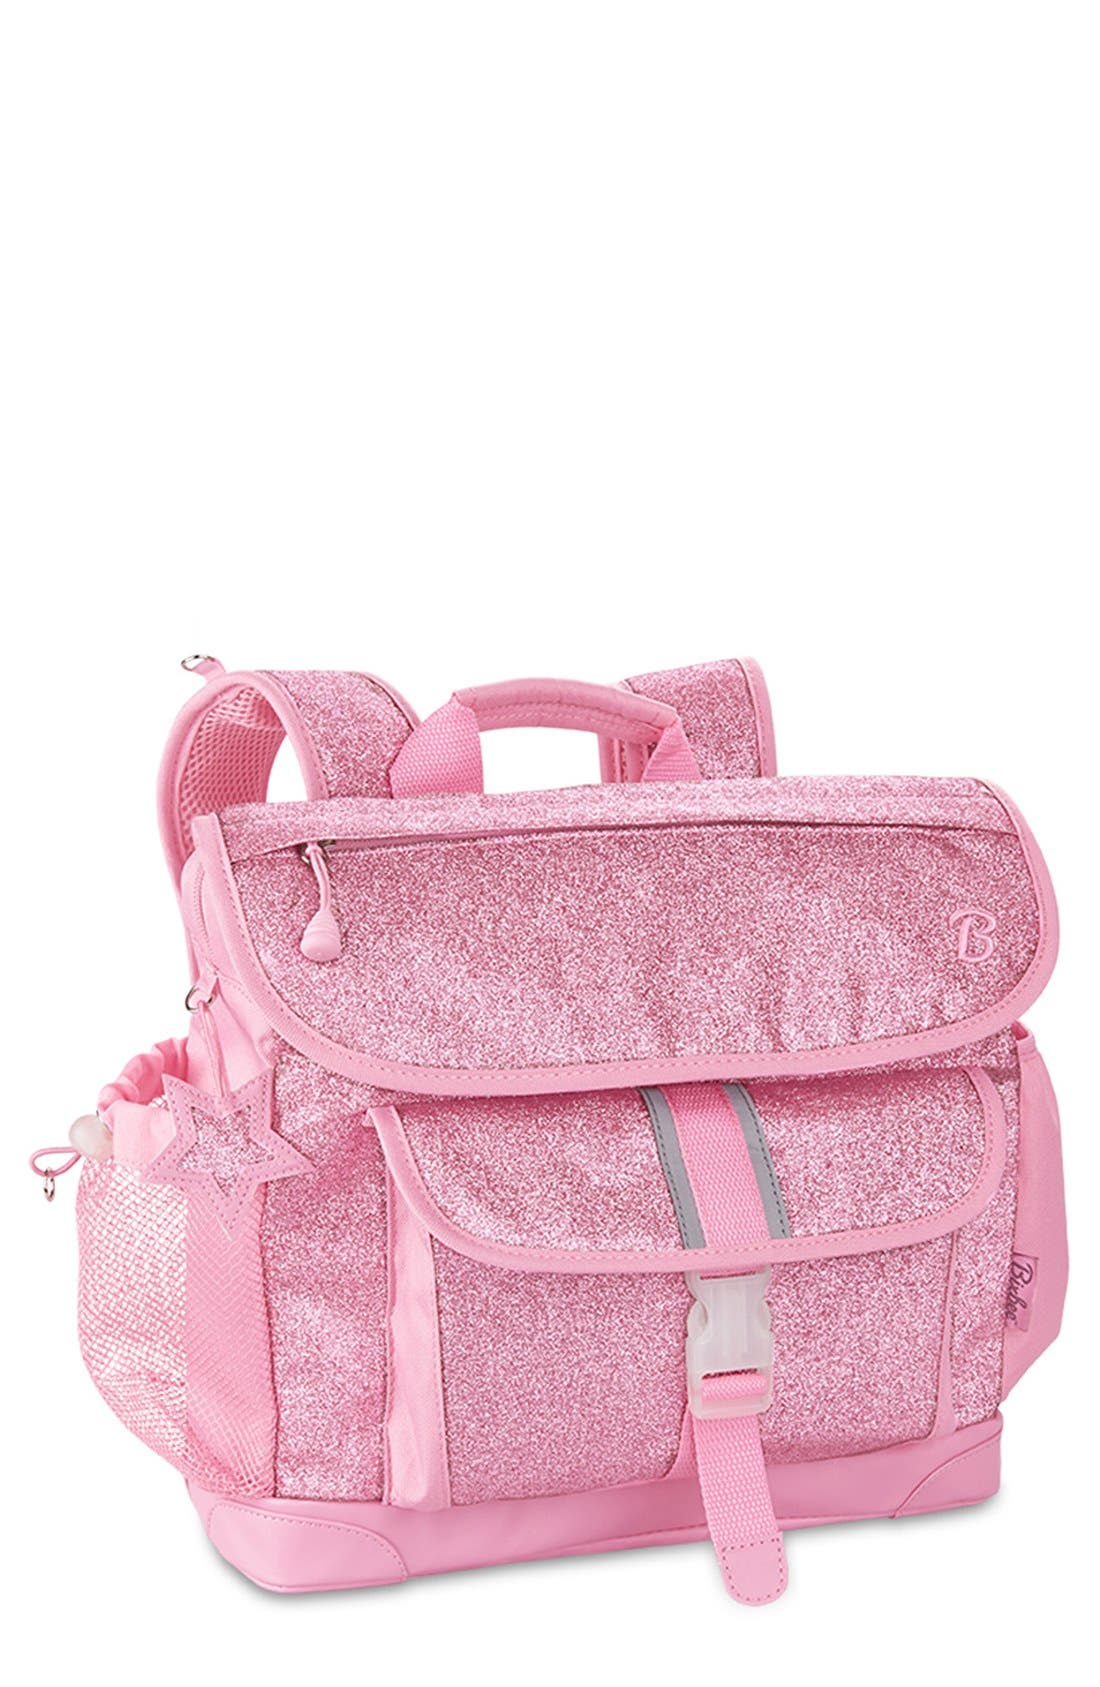 'Large Sparkalicious' Backpack,                         Main,                         color,